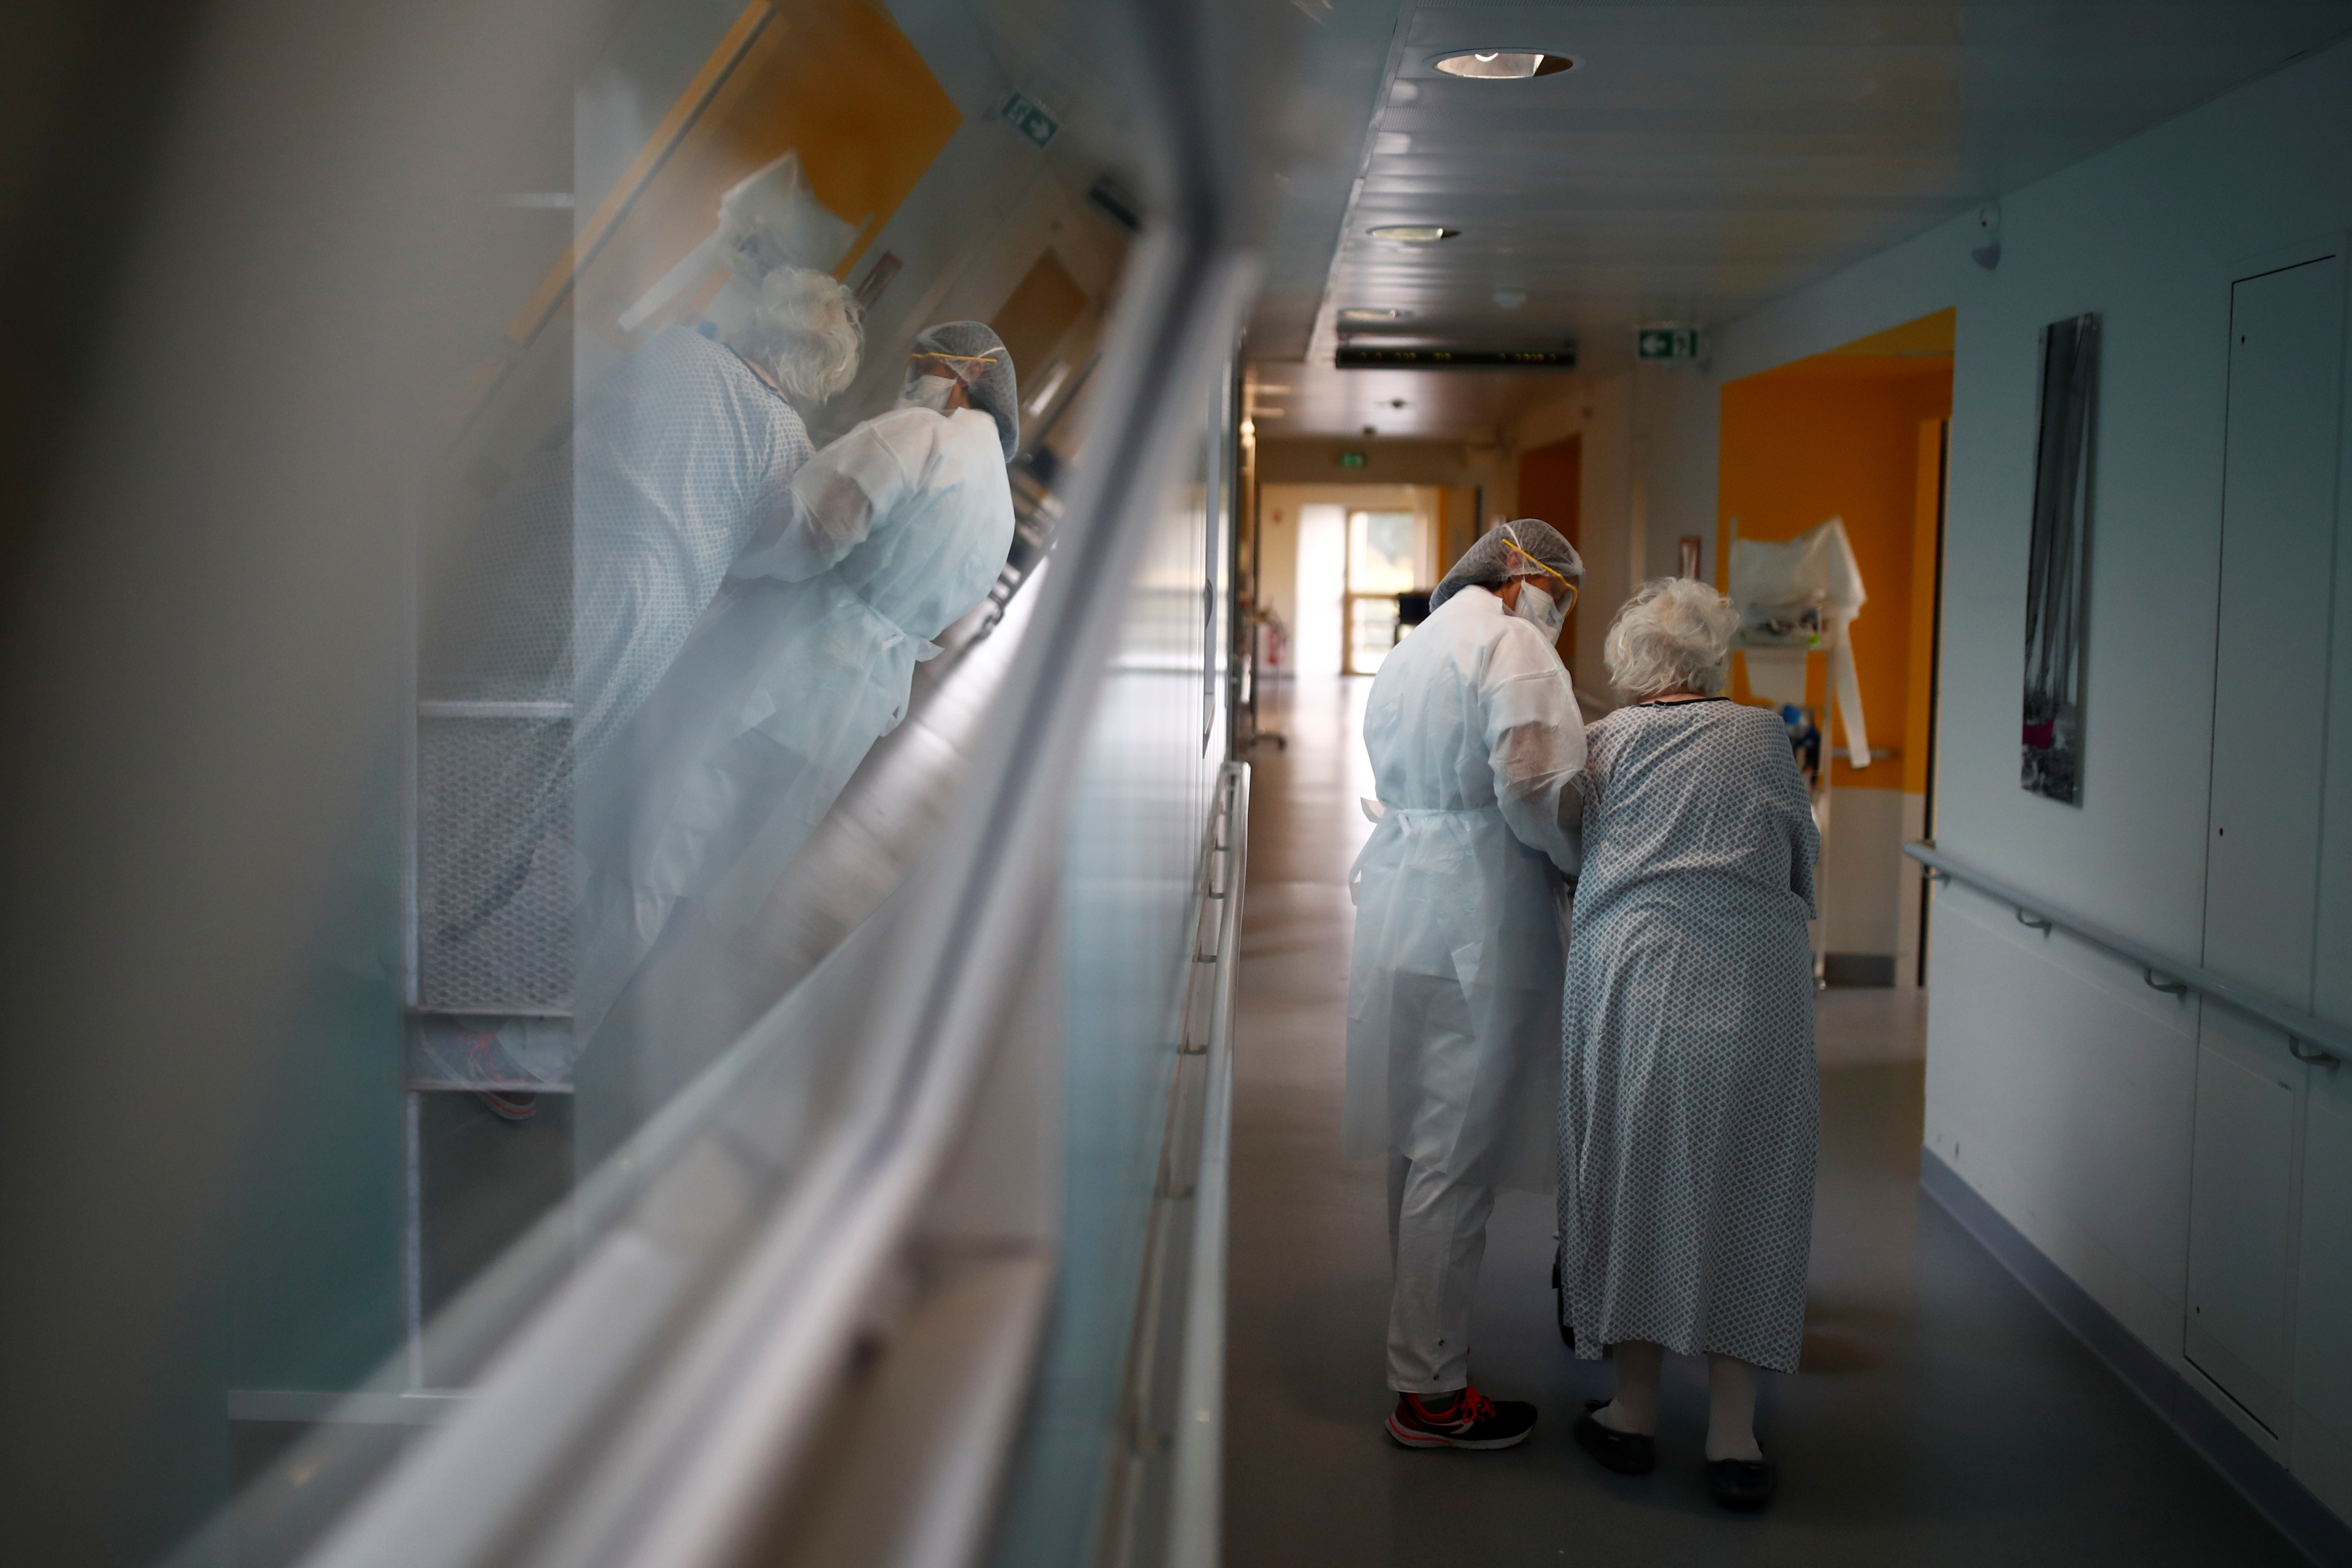 A physiotherapist, wearing a protective mask and a protective suit, works in a pulmonology unit at the hospital in Vannes where patients suffering from the coronavirus disease (COVID-19) are treated, France, October 12, 2020. REUTERS/Stephane Mahe